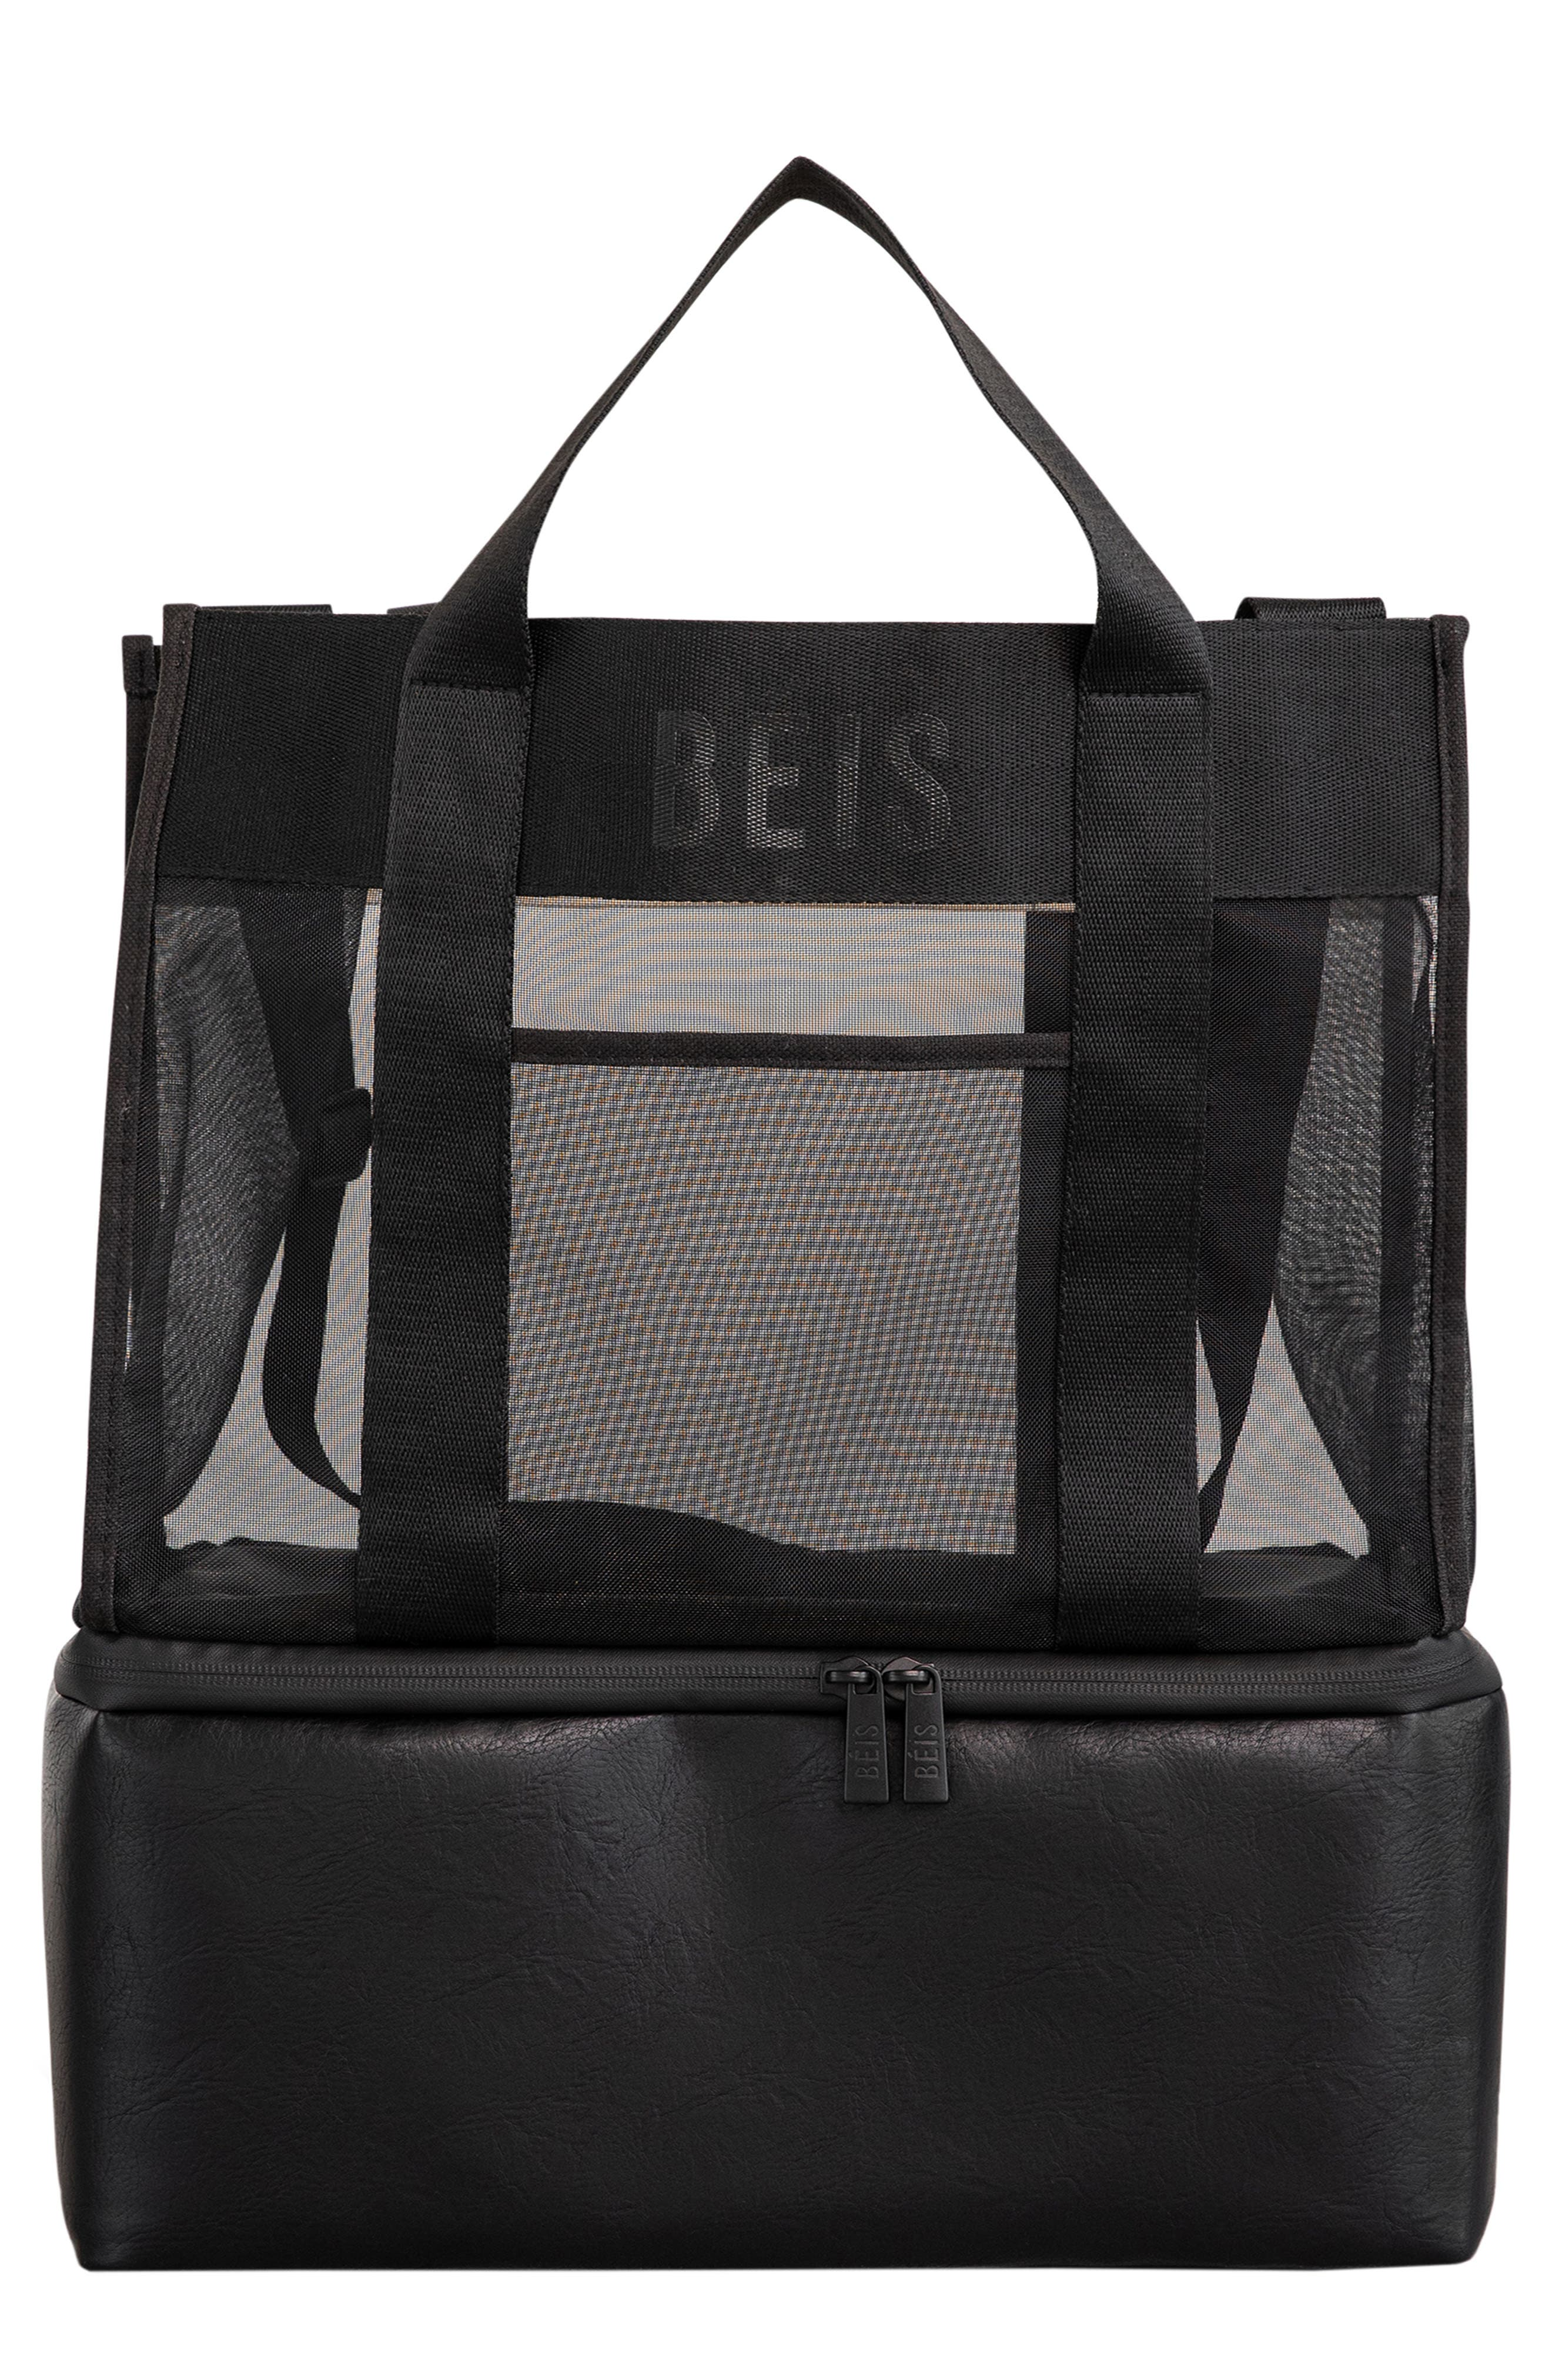 The Mesh Cooler Tote